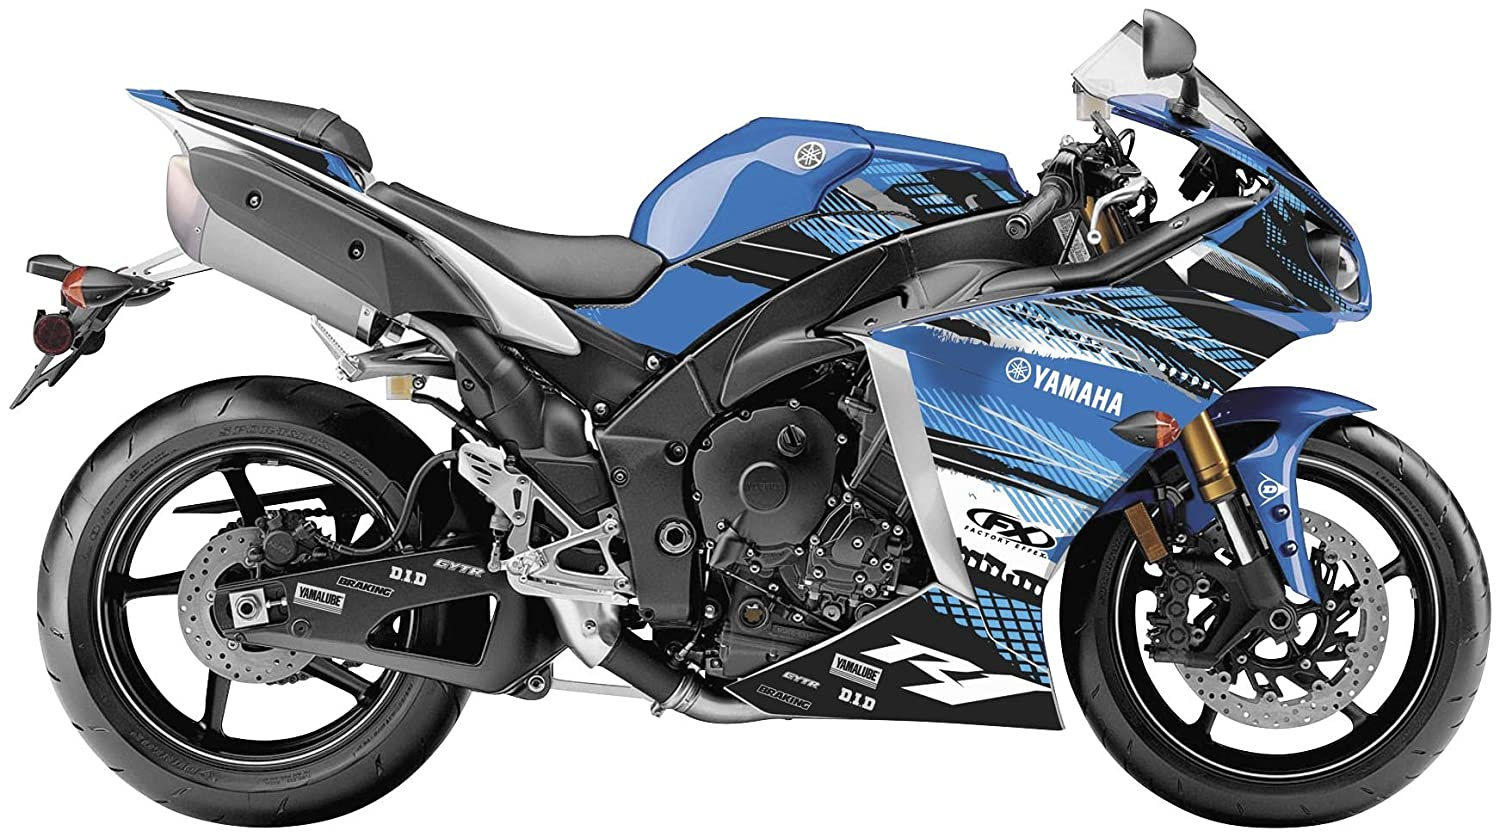 Factory Effex 15-15222-B EV-R Series OEM Blue Color Complete Street Bike Graphic Kit for Yamaha YZF-R1